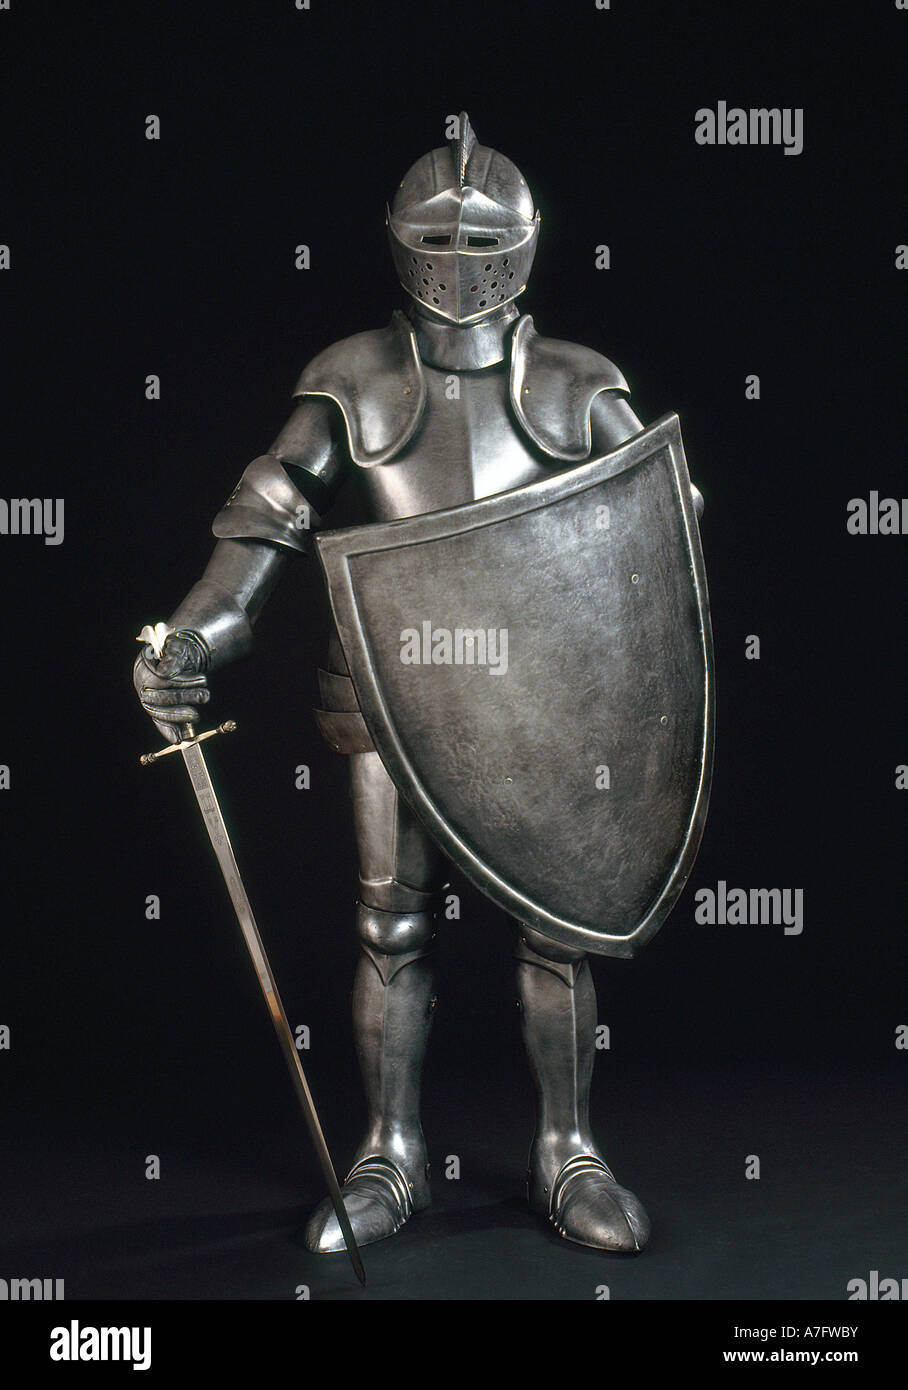 Knight in shiny armor vertical - Stock Image